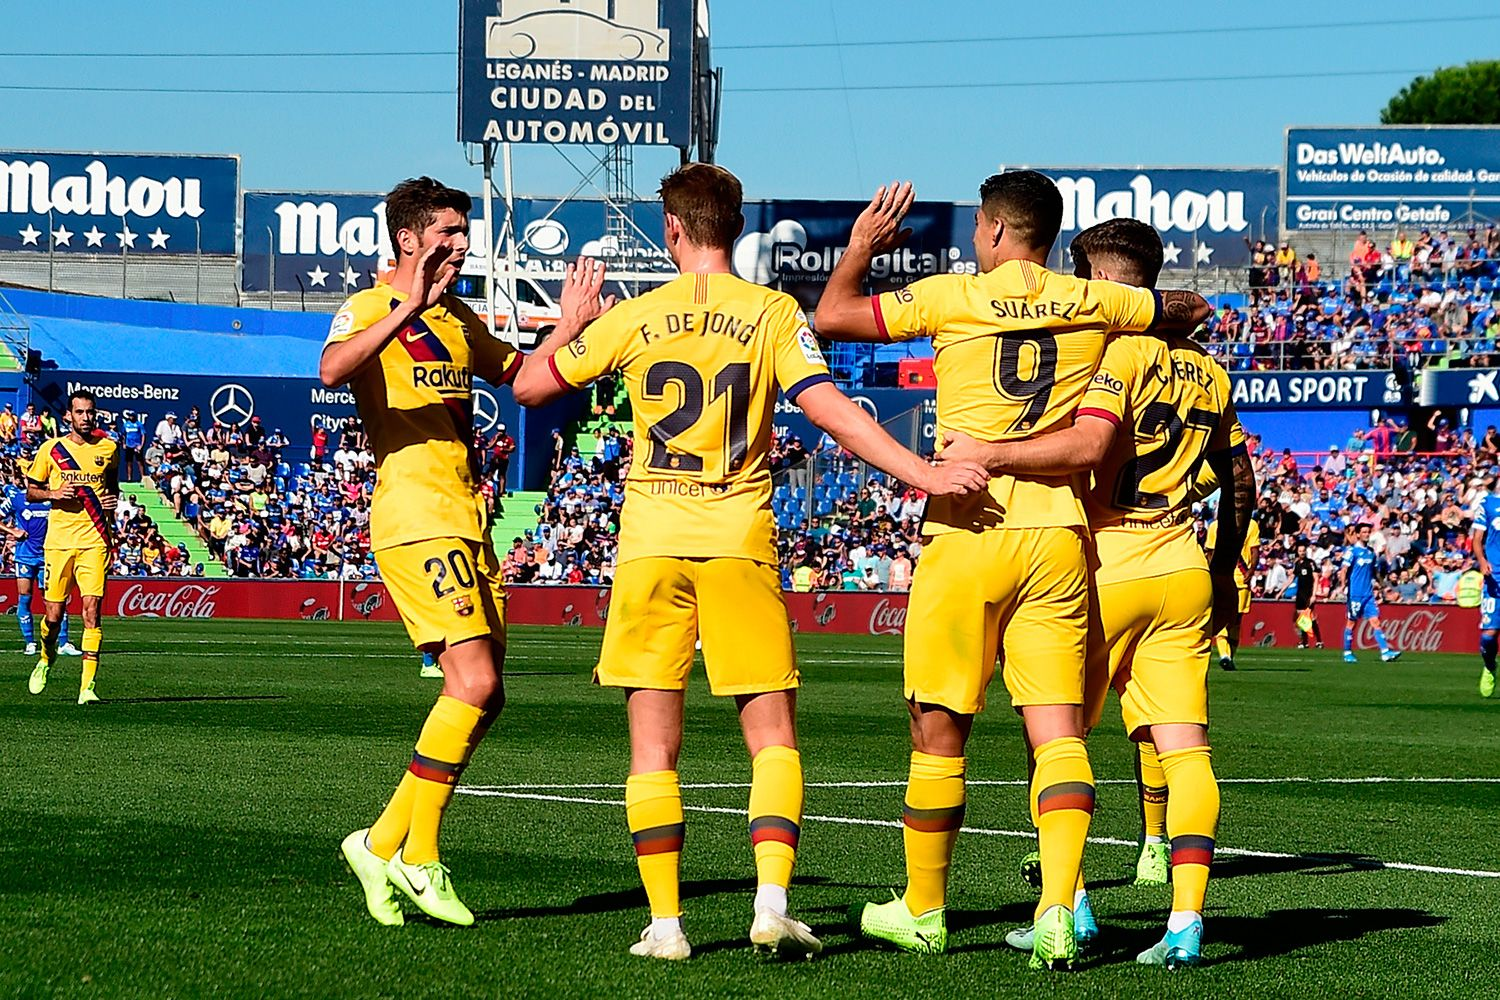 Barca Breaks Its Bad Streak And Returns To Win At Home Eight Games